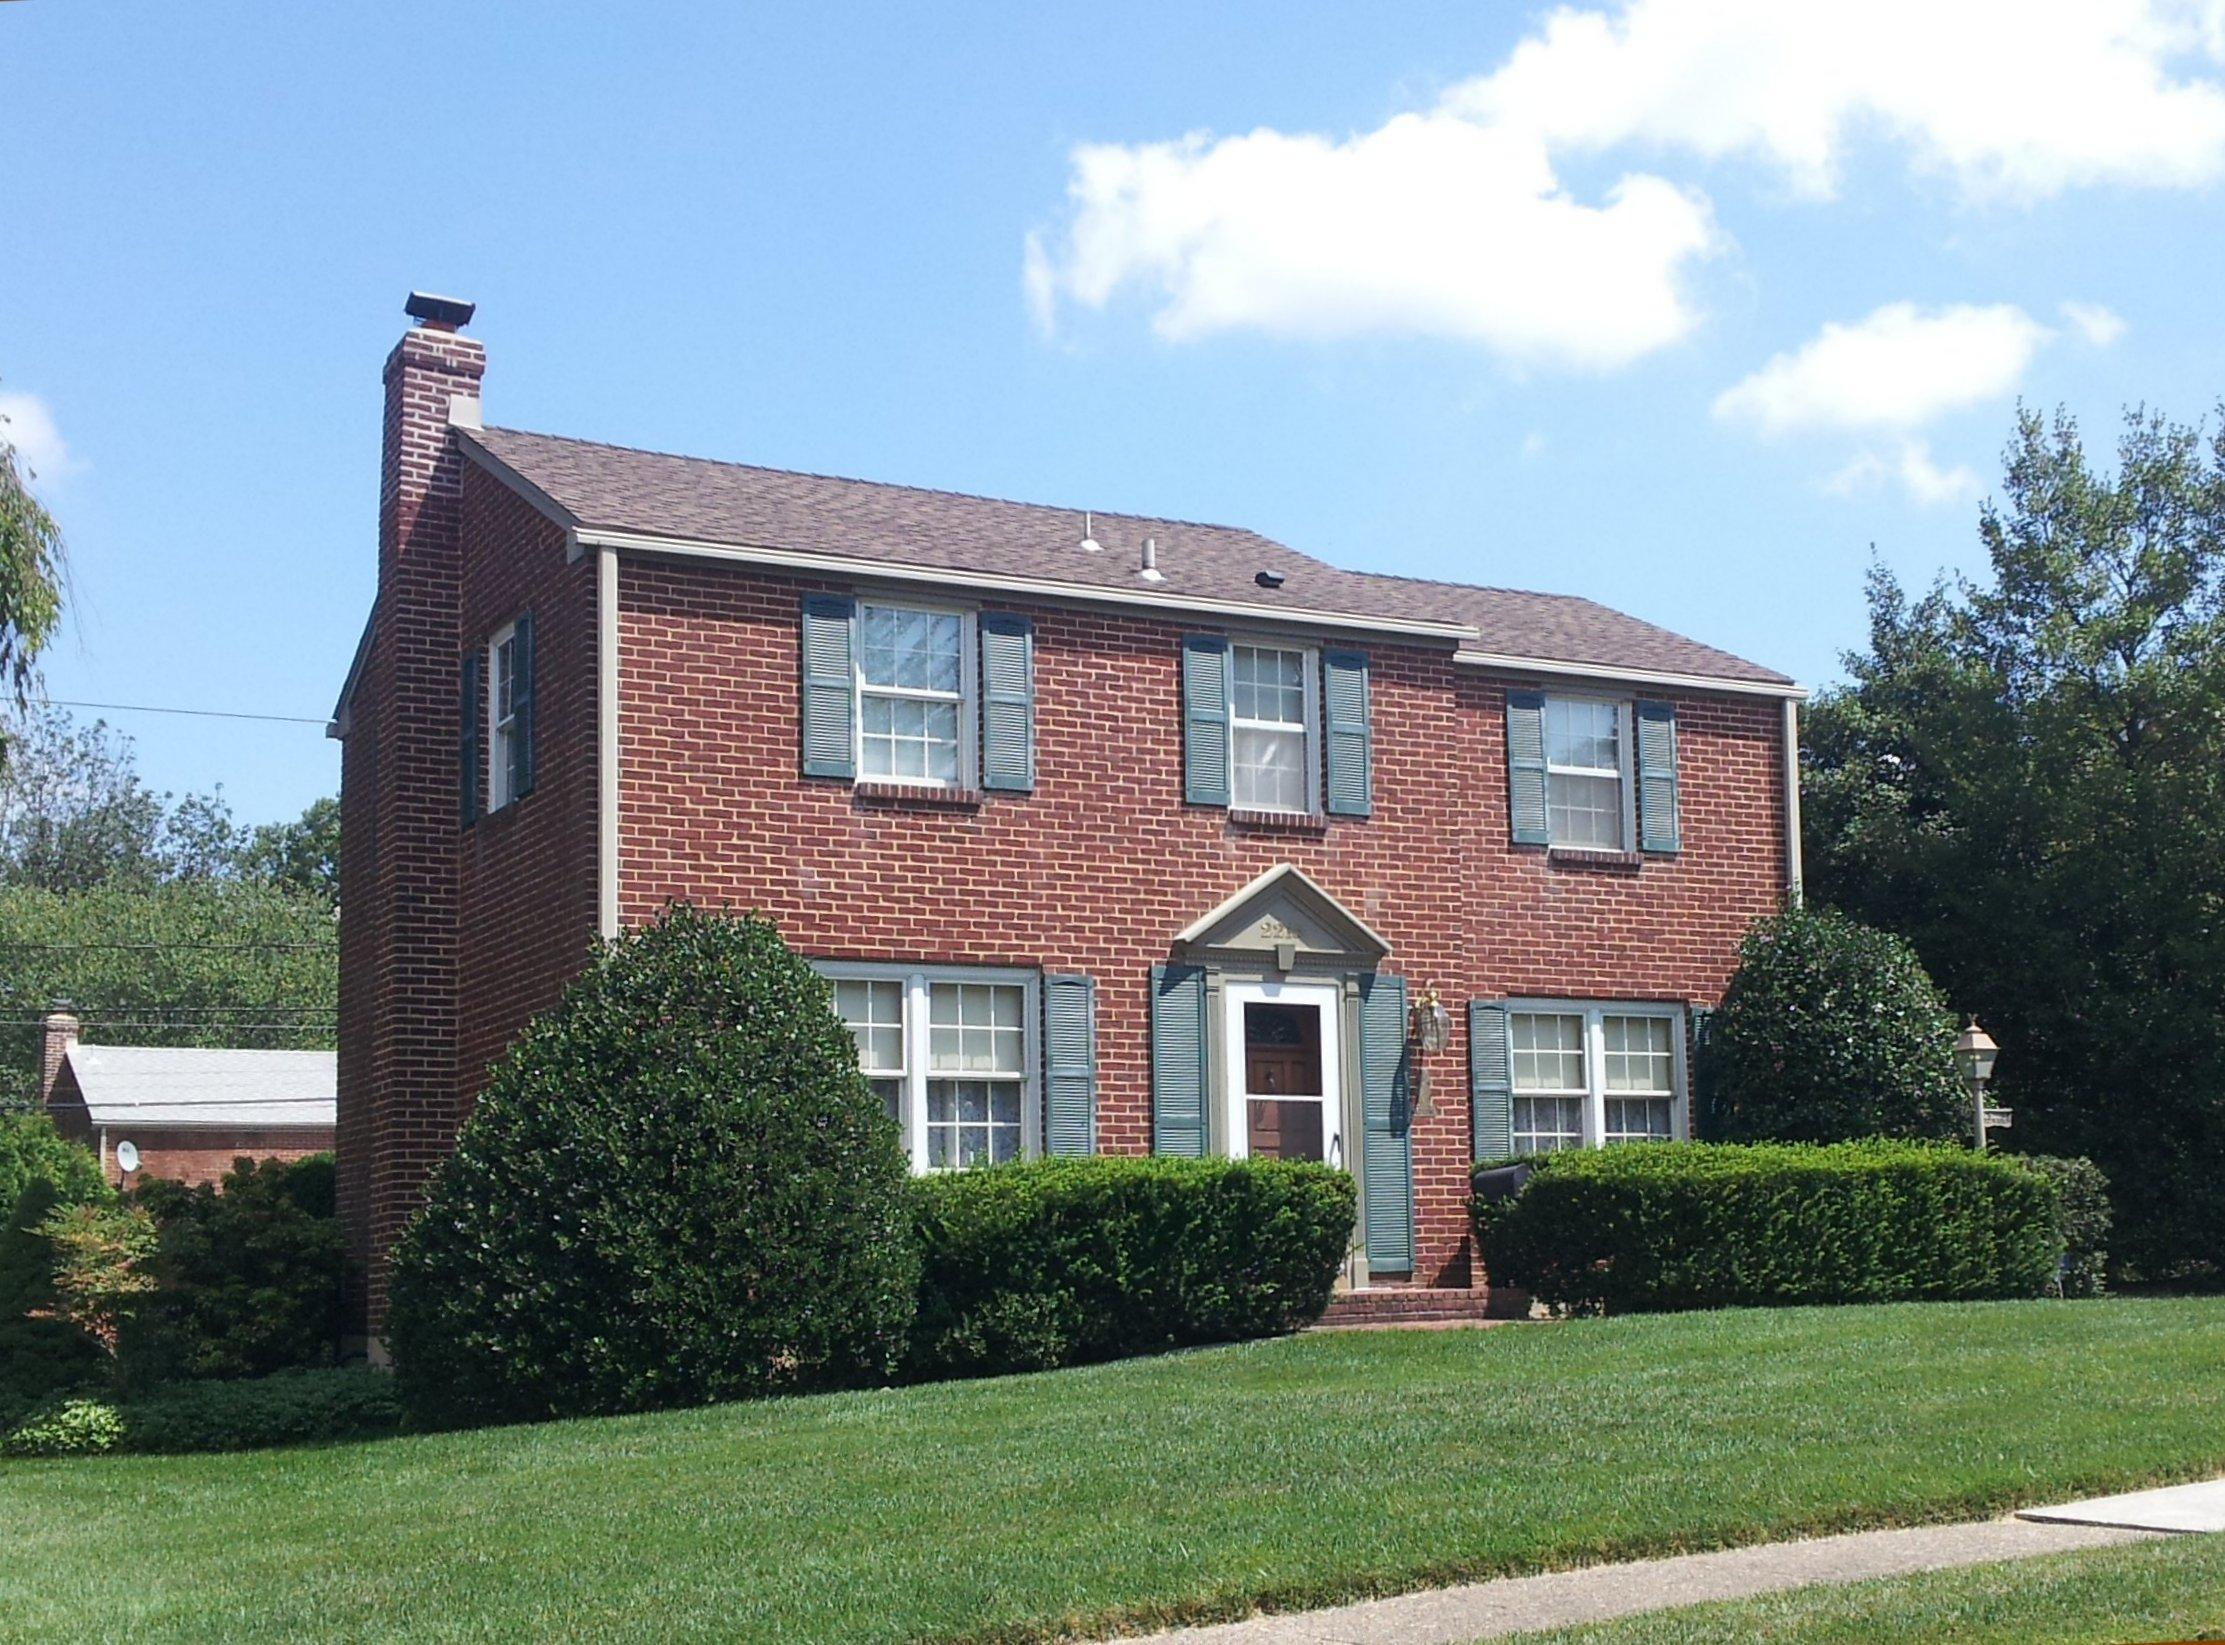 This Wilmington brick beauty sold in less than one week at full price.